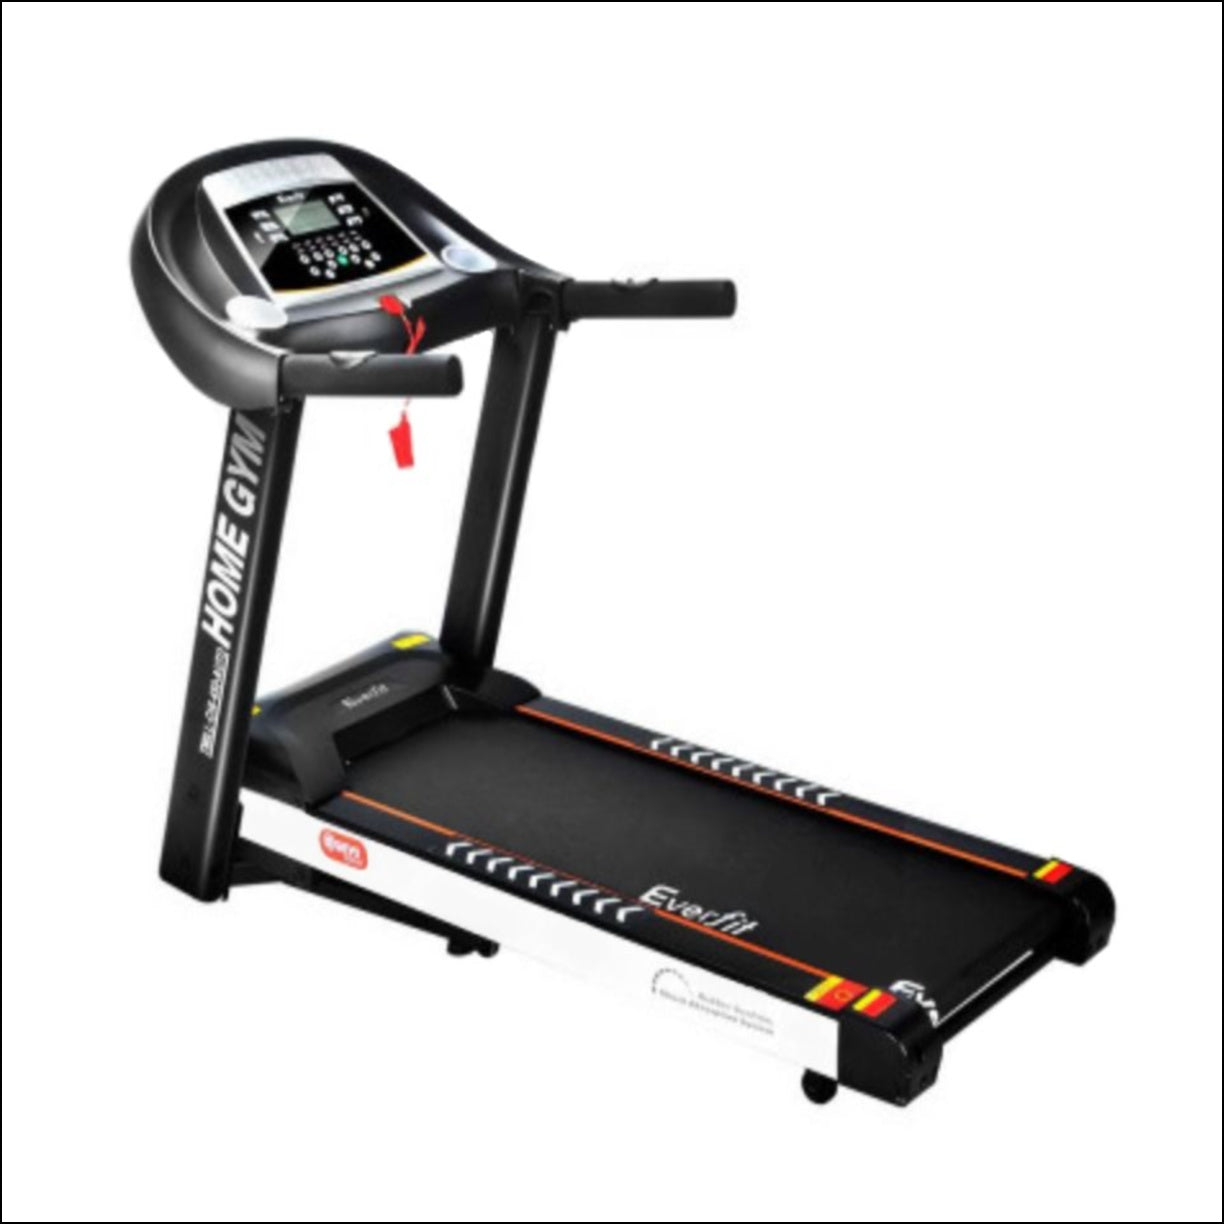 The Electric Treadmill features 12 pre-set training programs designed to simulate natural terrain. A user-centric control panel with a digital LCD display lets you set up speeds of between 0.8kmh and 18kmh and other monitoring parameters.